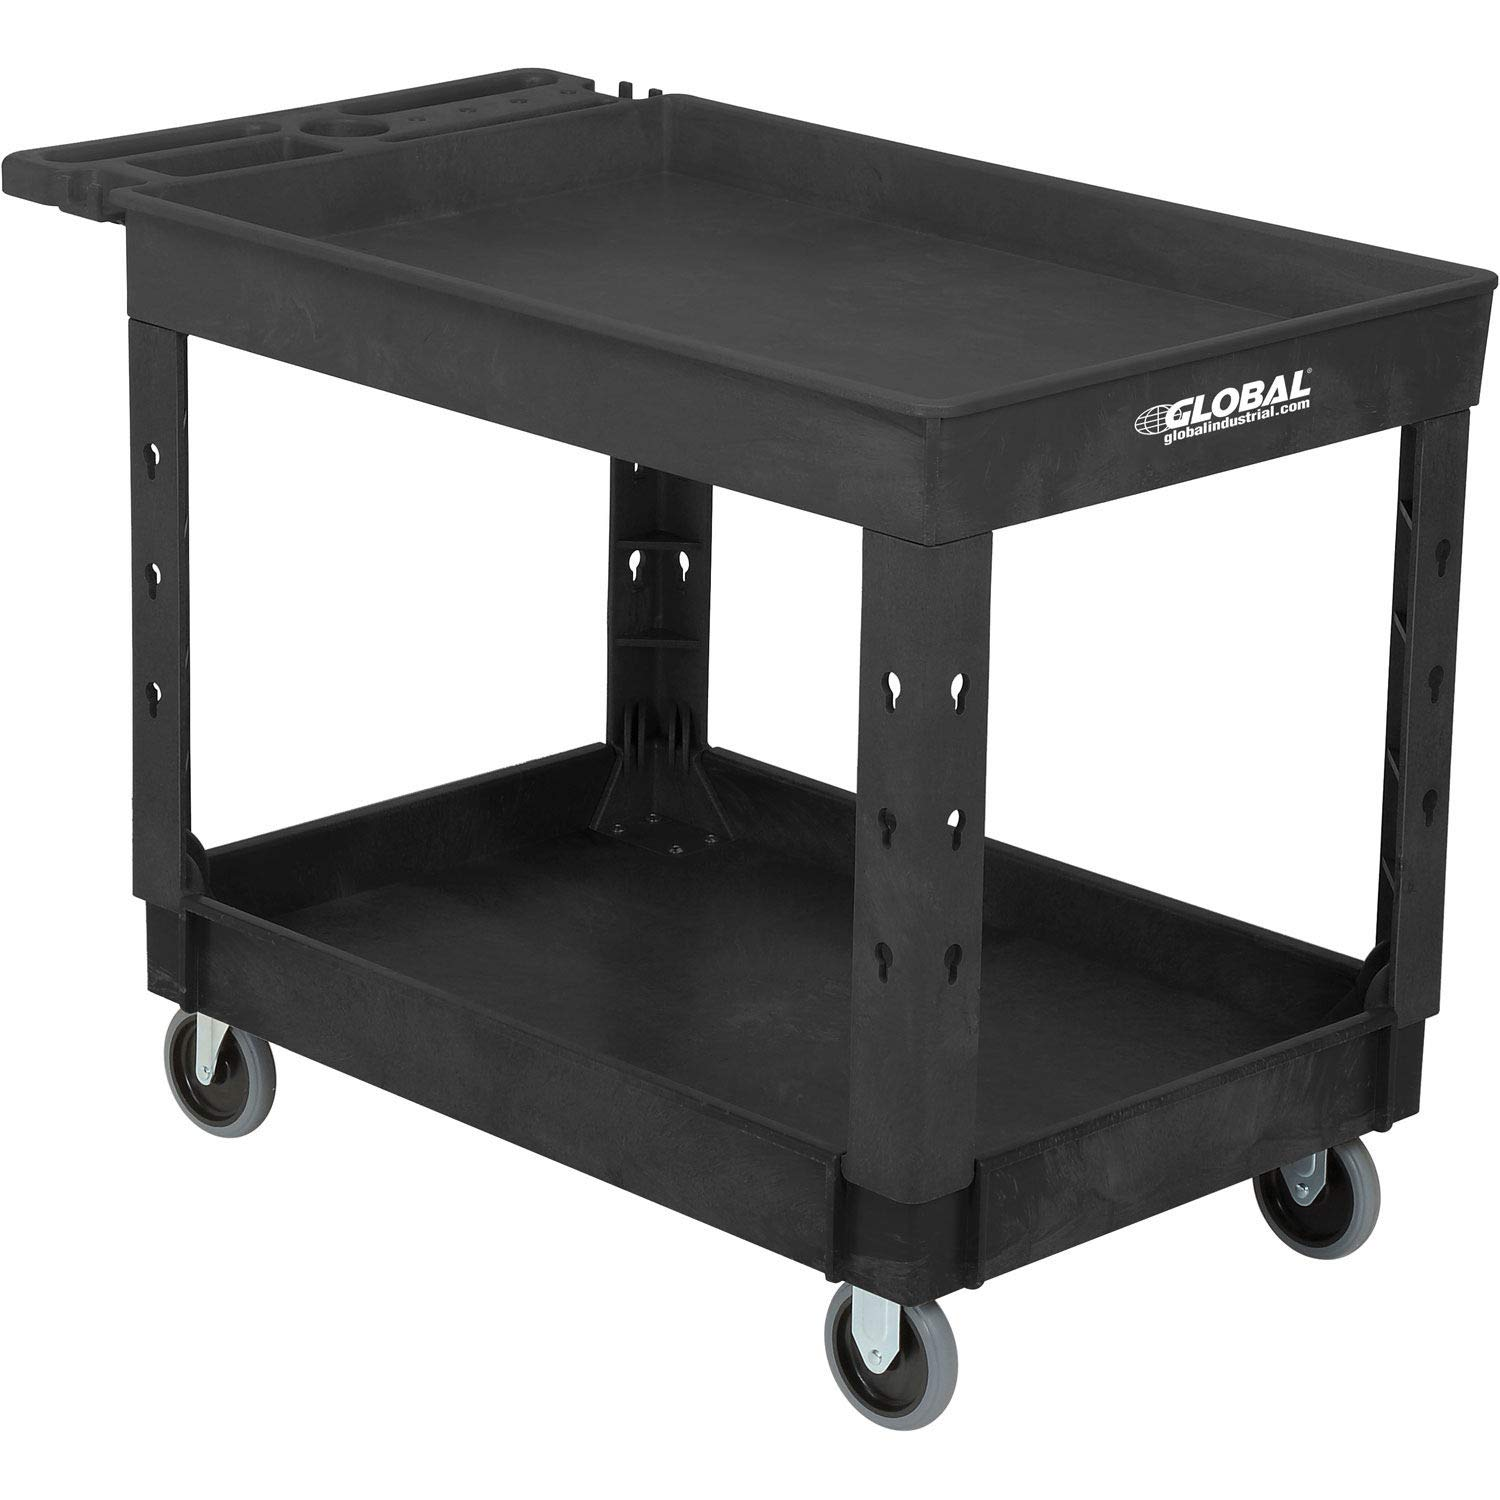 """Industrial Service & Utility Cart, Plastic 2 Tray Black Shelf, 44"""" x 25-1/2"""", 5'' Rubber Casters"""